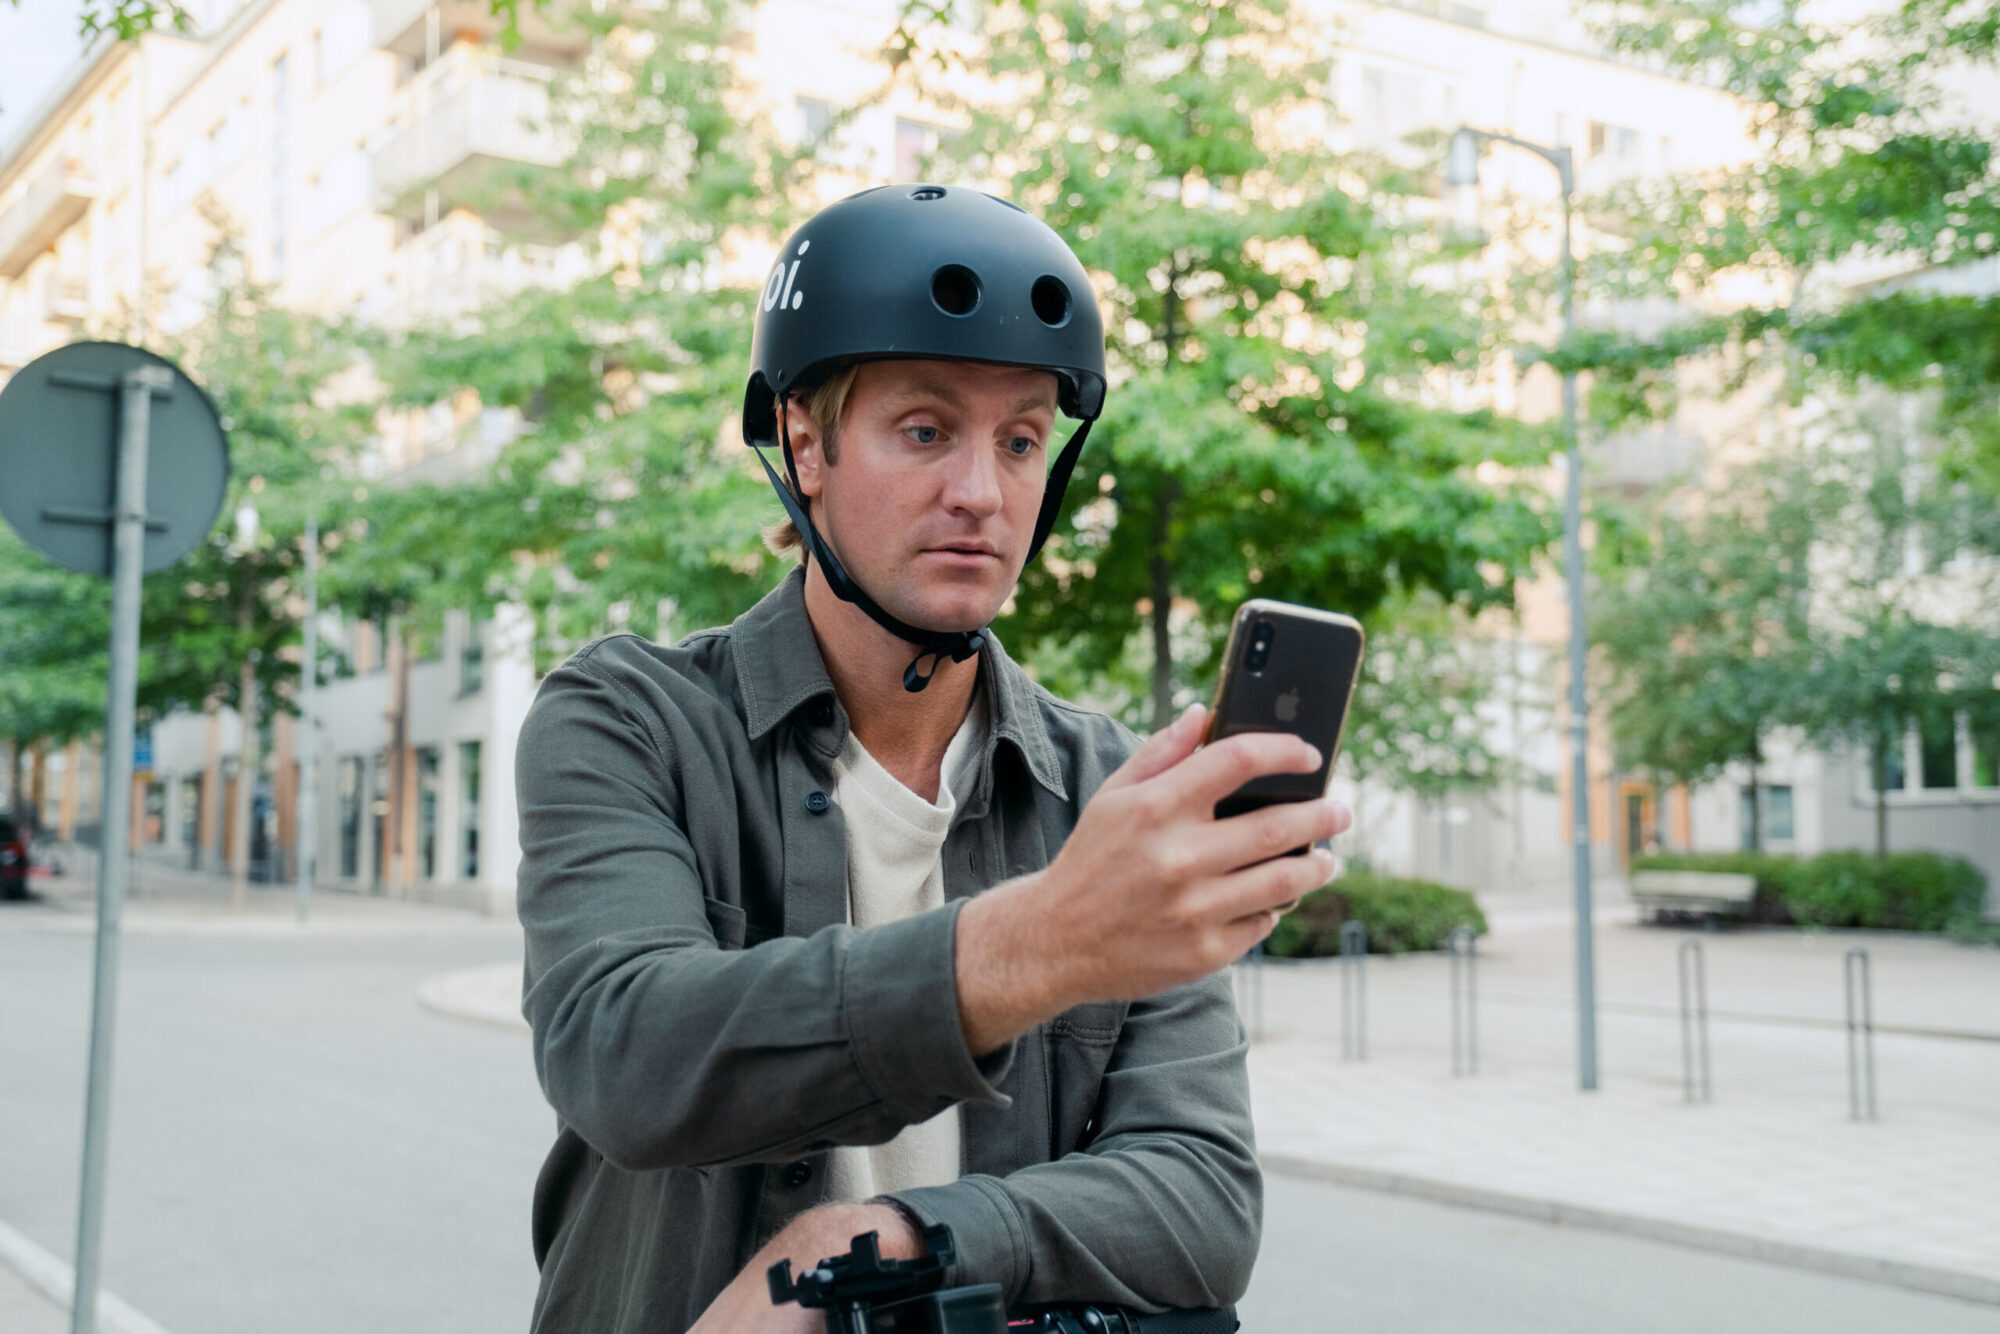 Voi uses AI selfie tool to reward e-scooter riders for wearing helmets